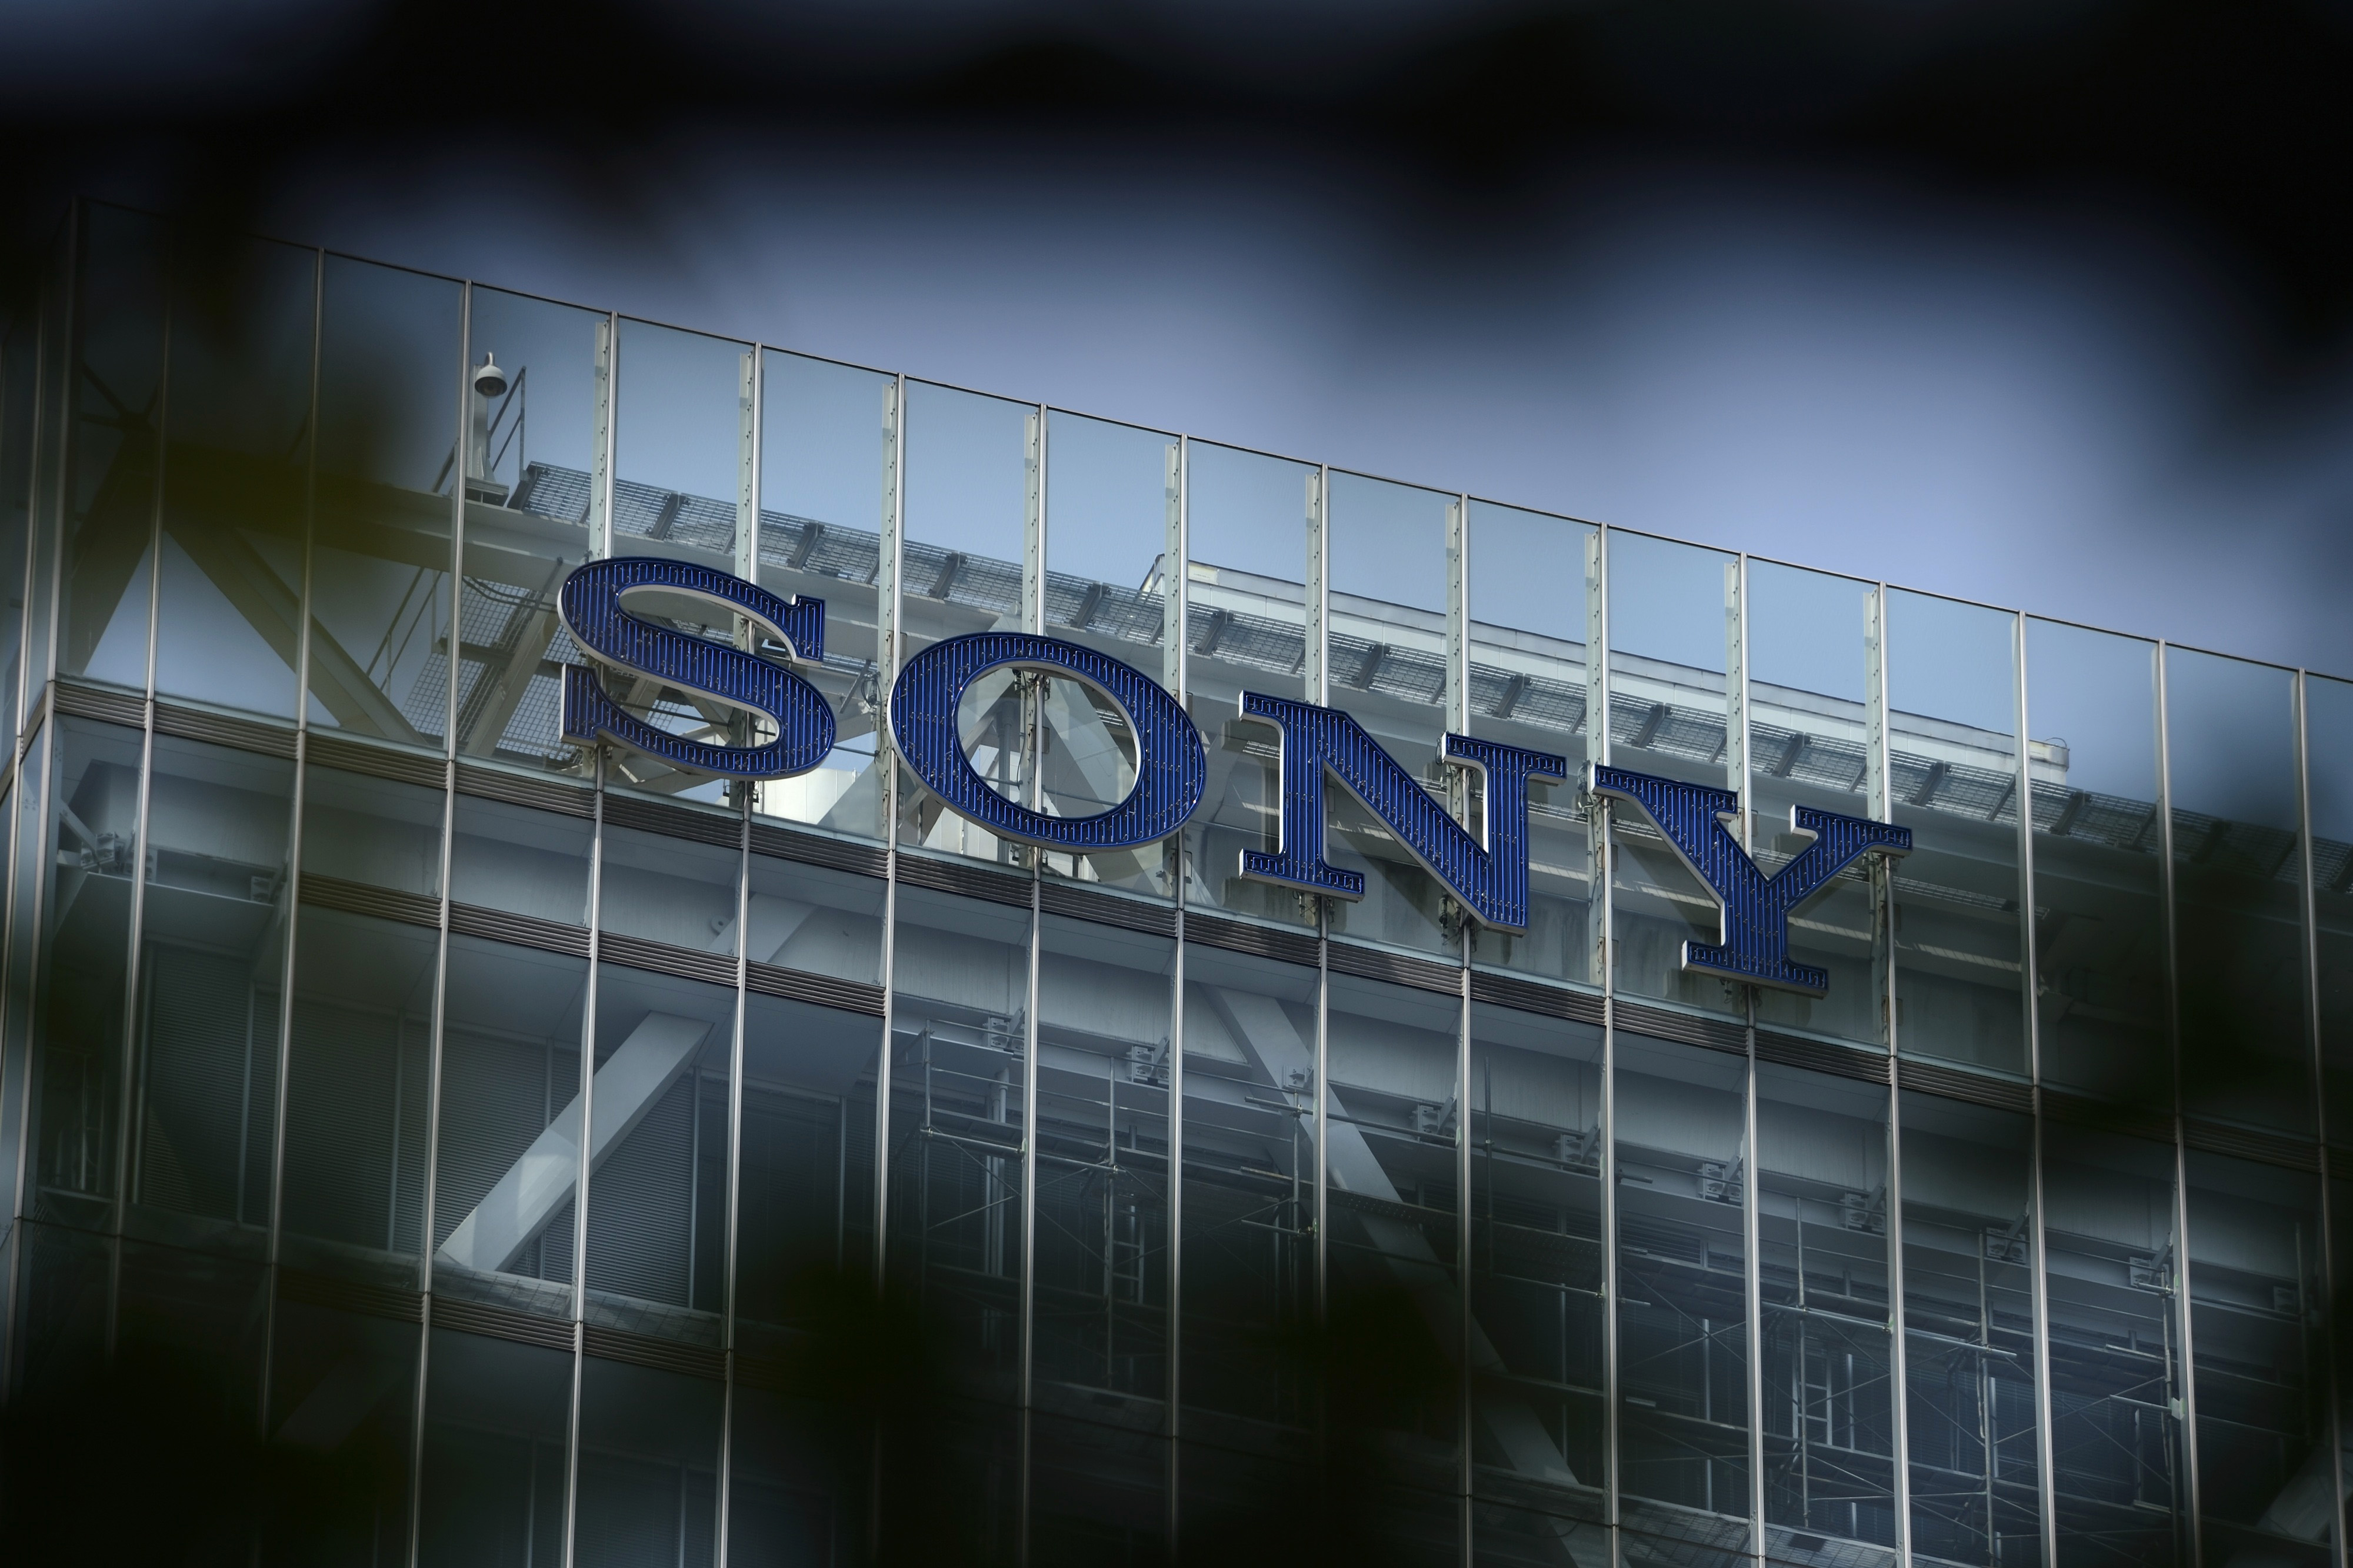 Sony Corp. signage is displayed atop the company's headquarters in Tokyo, Japan, on Thursday, July 31, 2014.